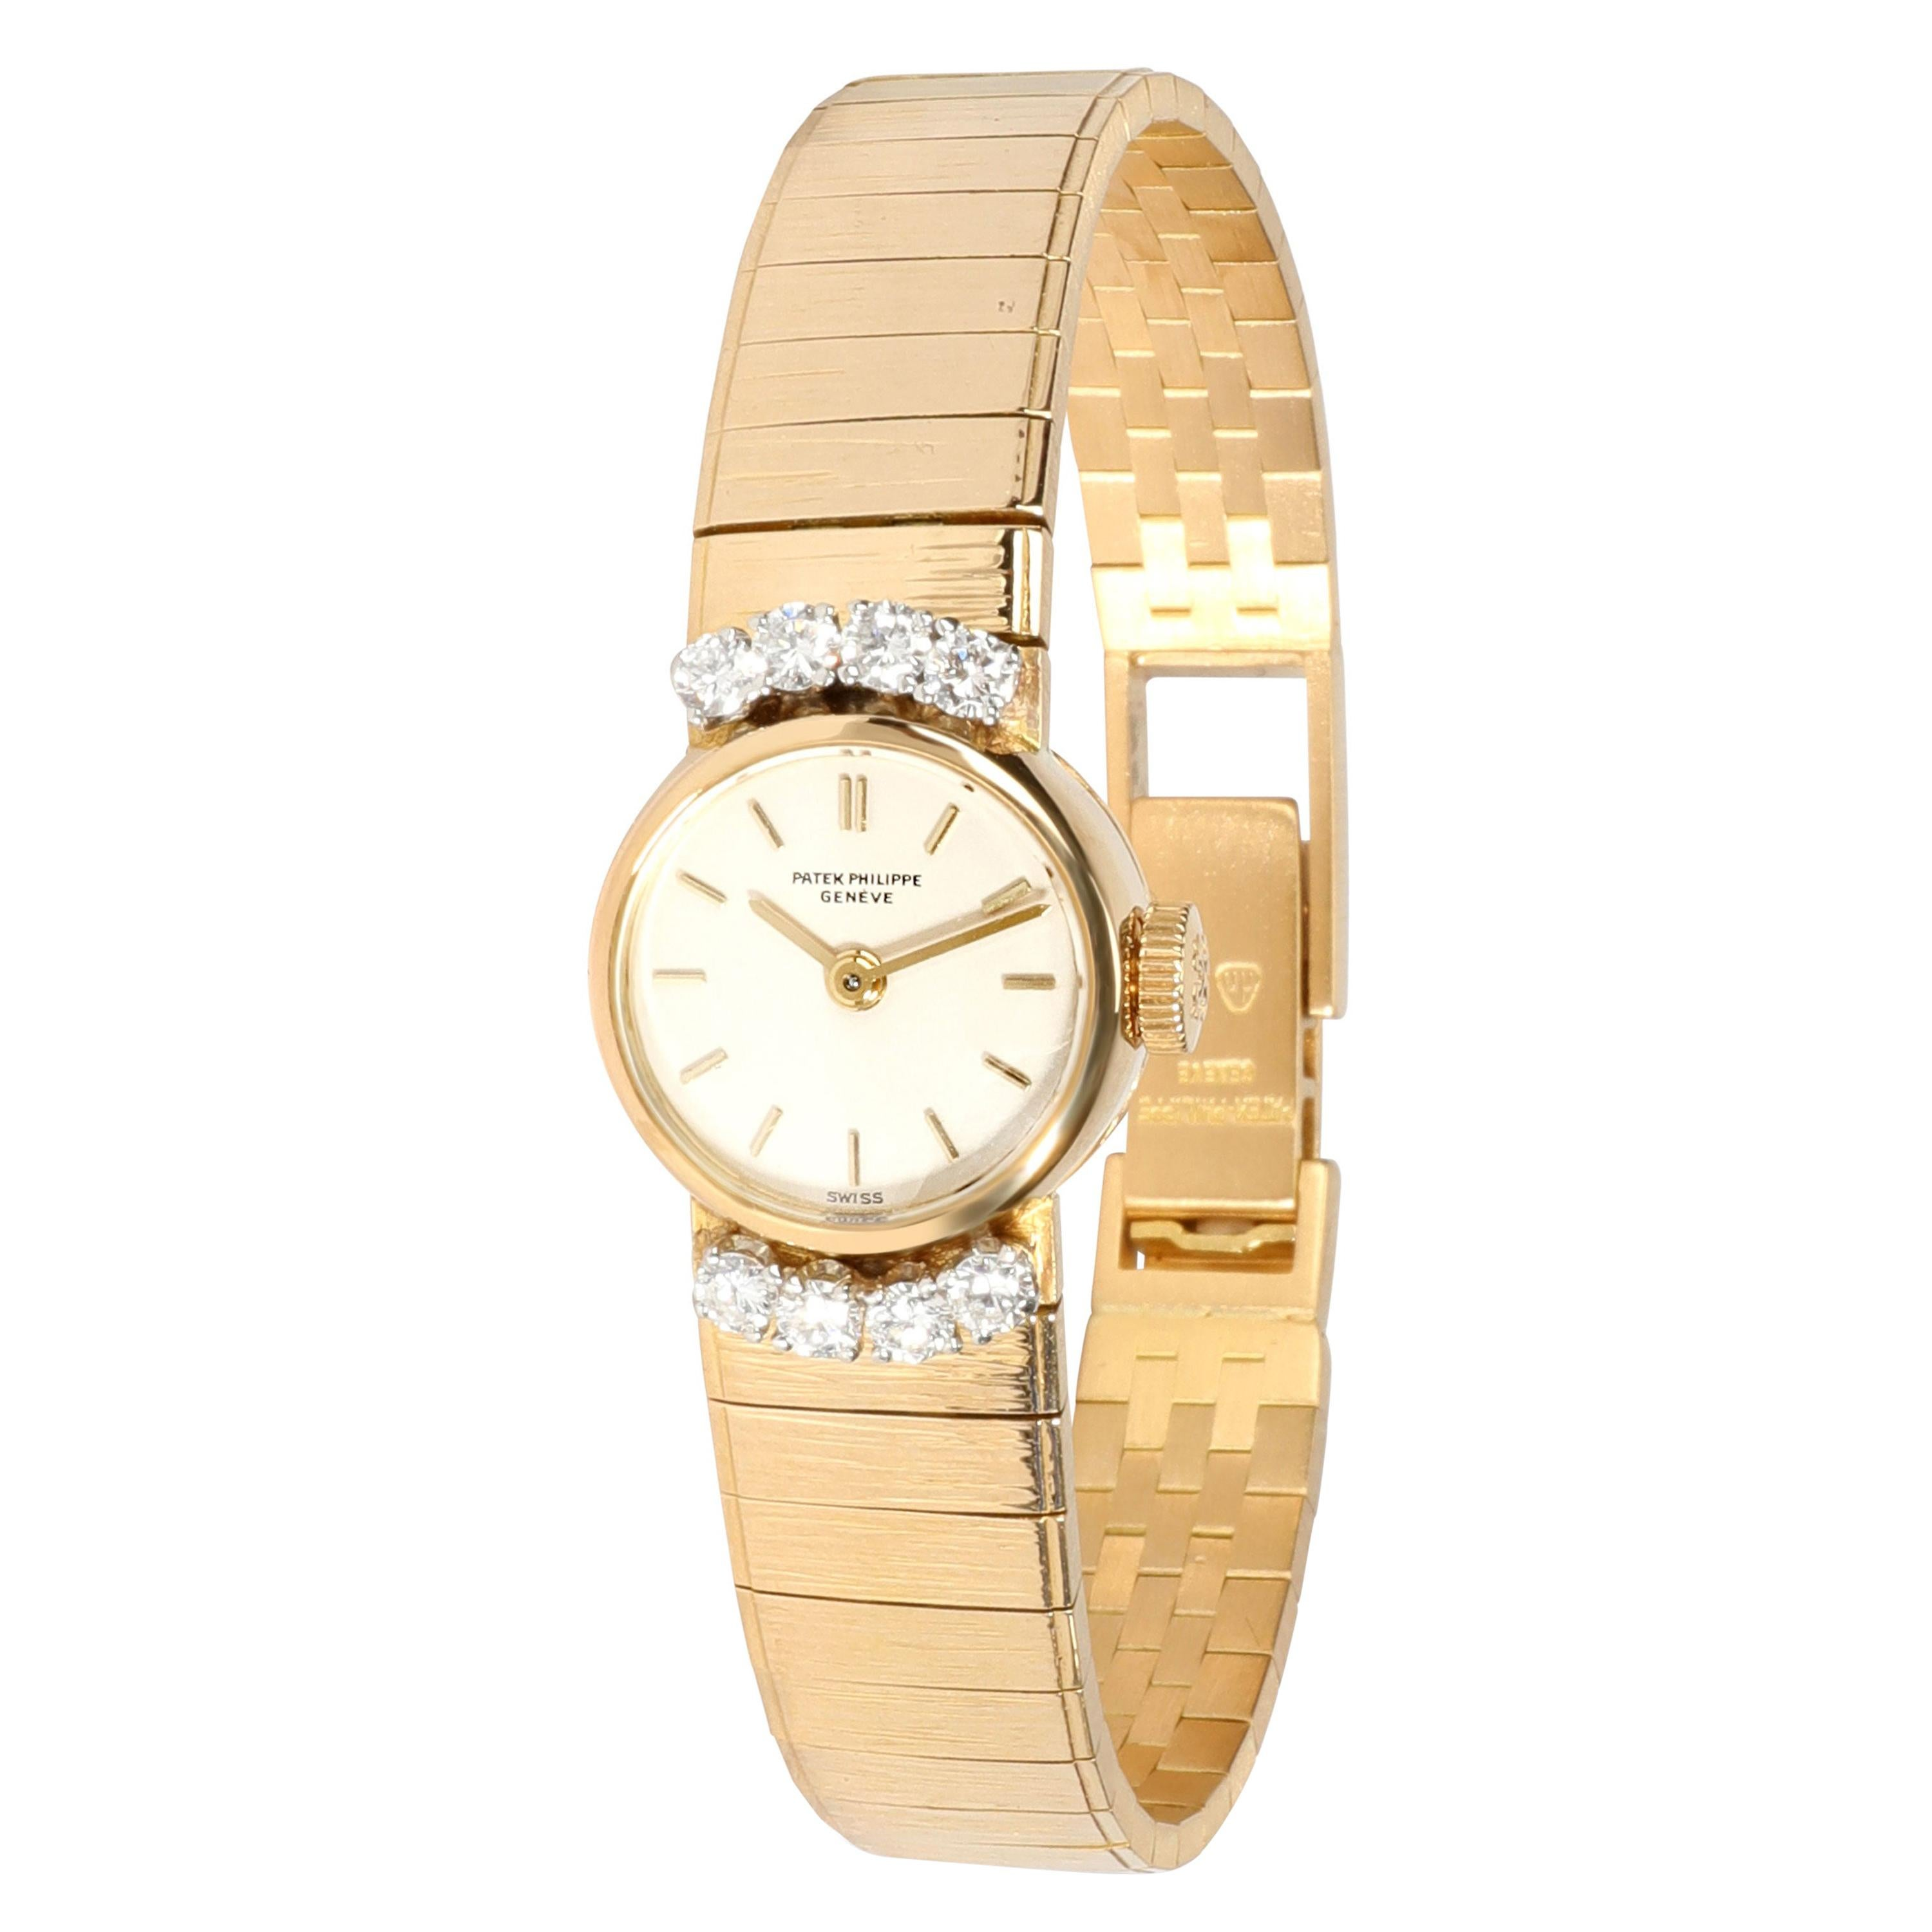 Patek Philippe Vintage Cocktail 3266/68 Women's Watch in 18kt Yellow Gold